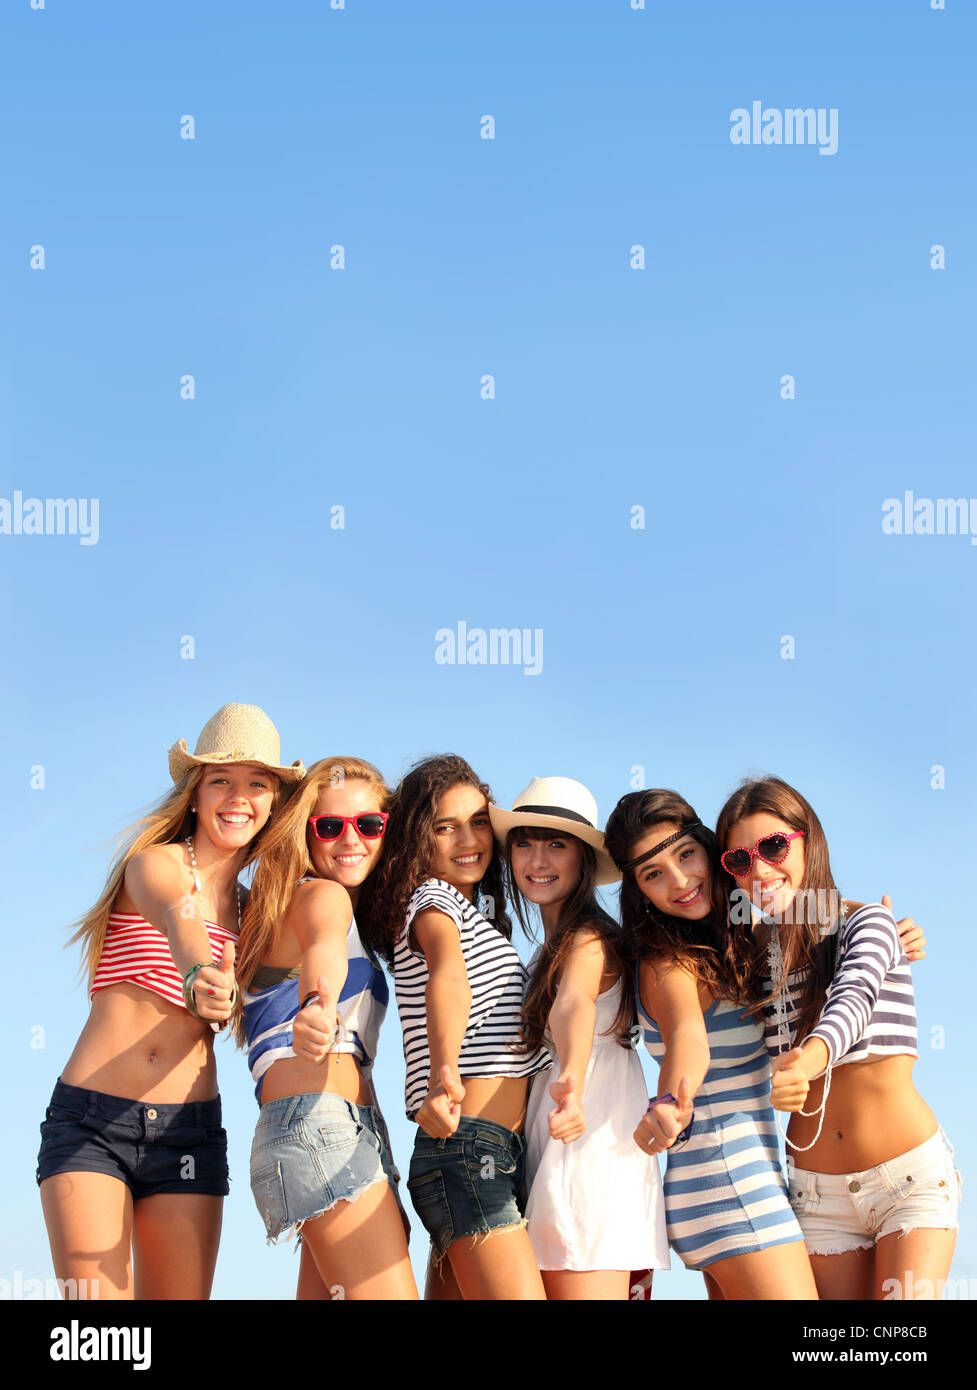 group of teens on beach summer vacation or spring break - Stock Image